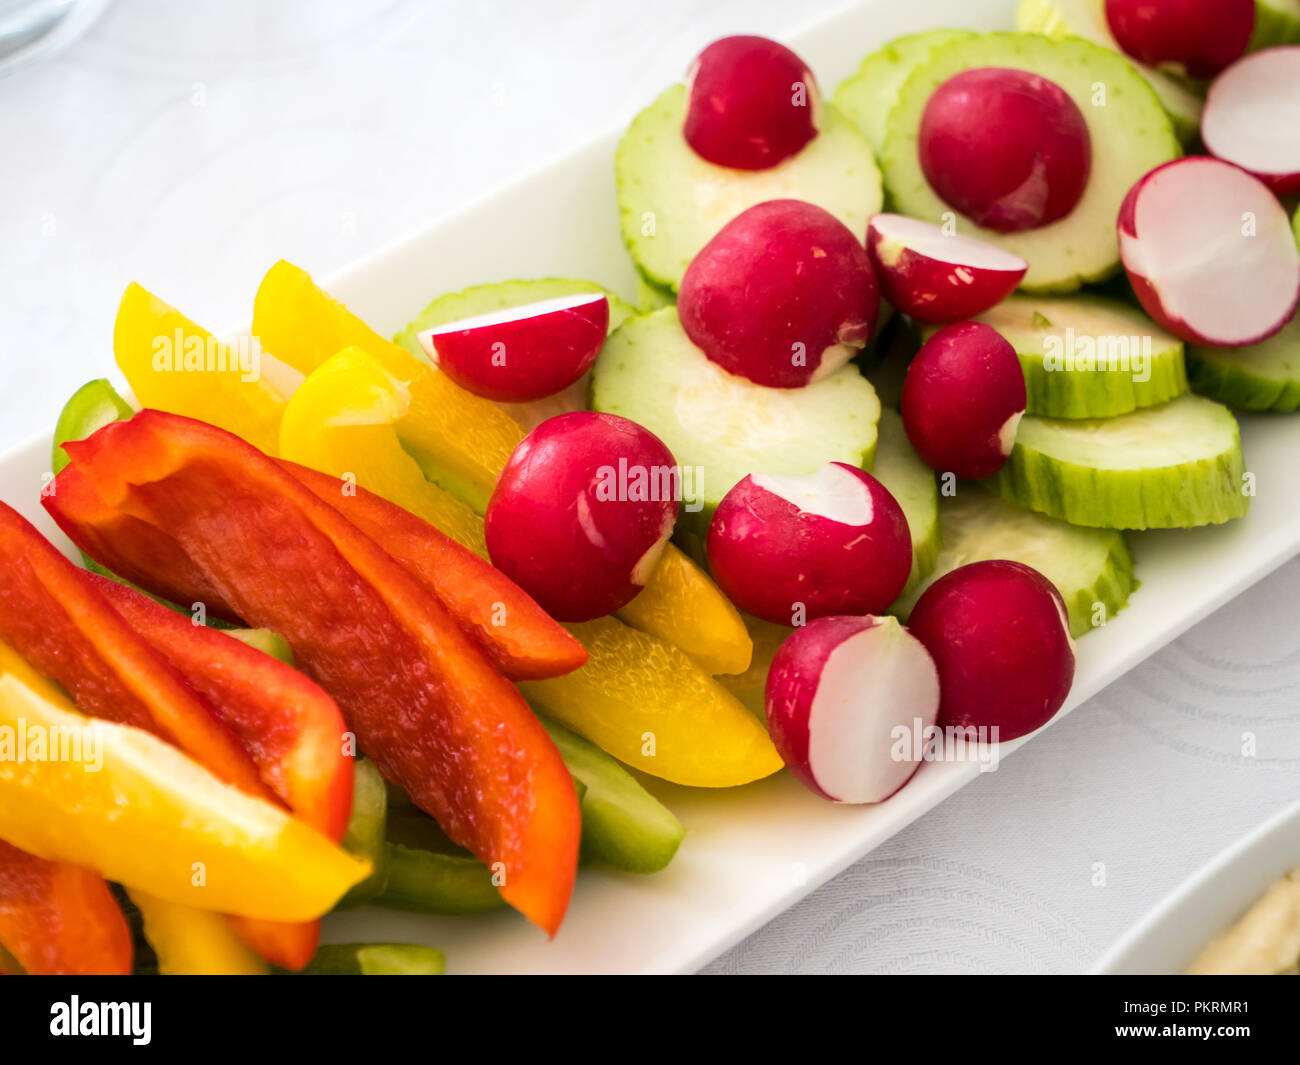 Close up of a plate with mixed fresh vegetables: redish, paprika, cucumber - Stock Image